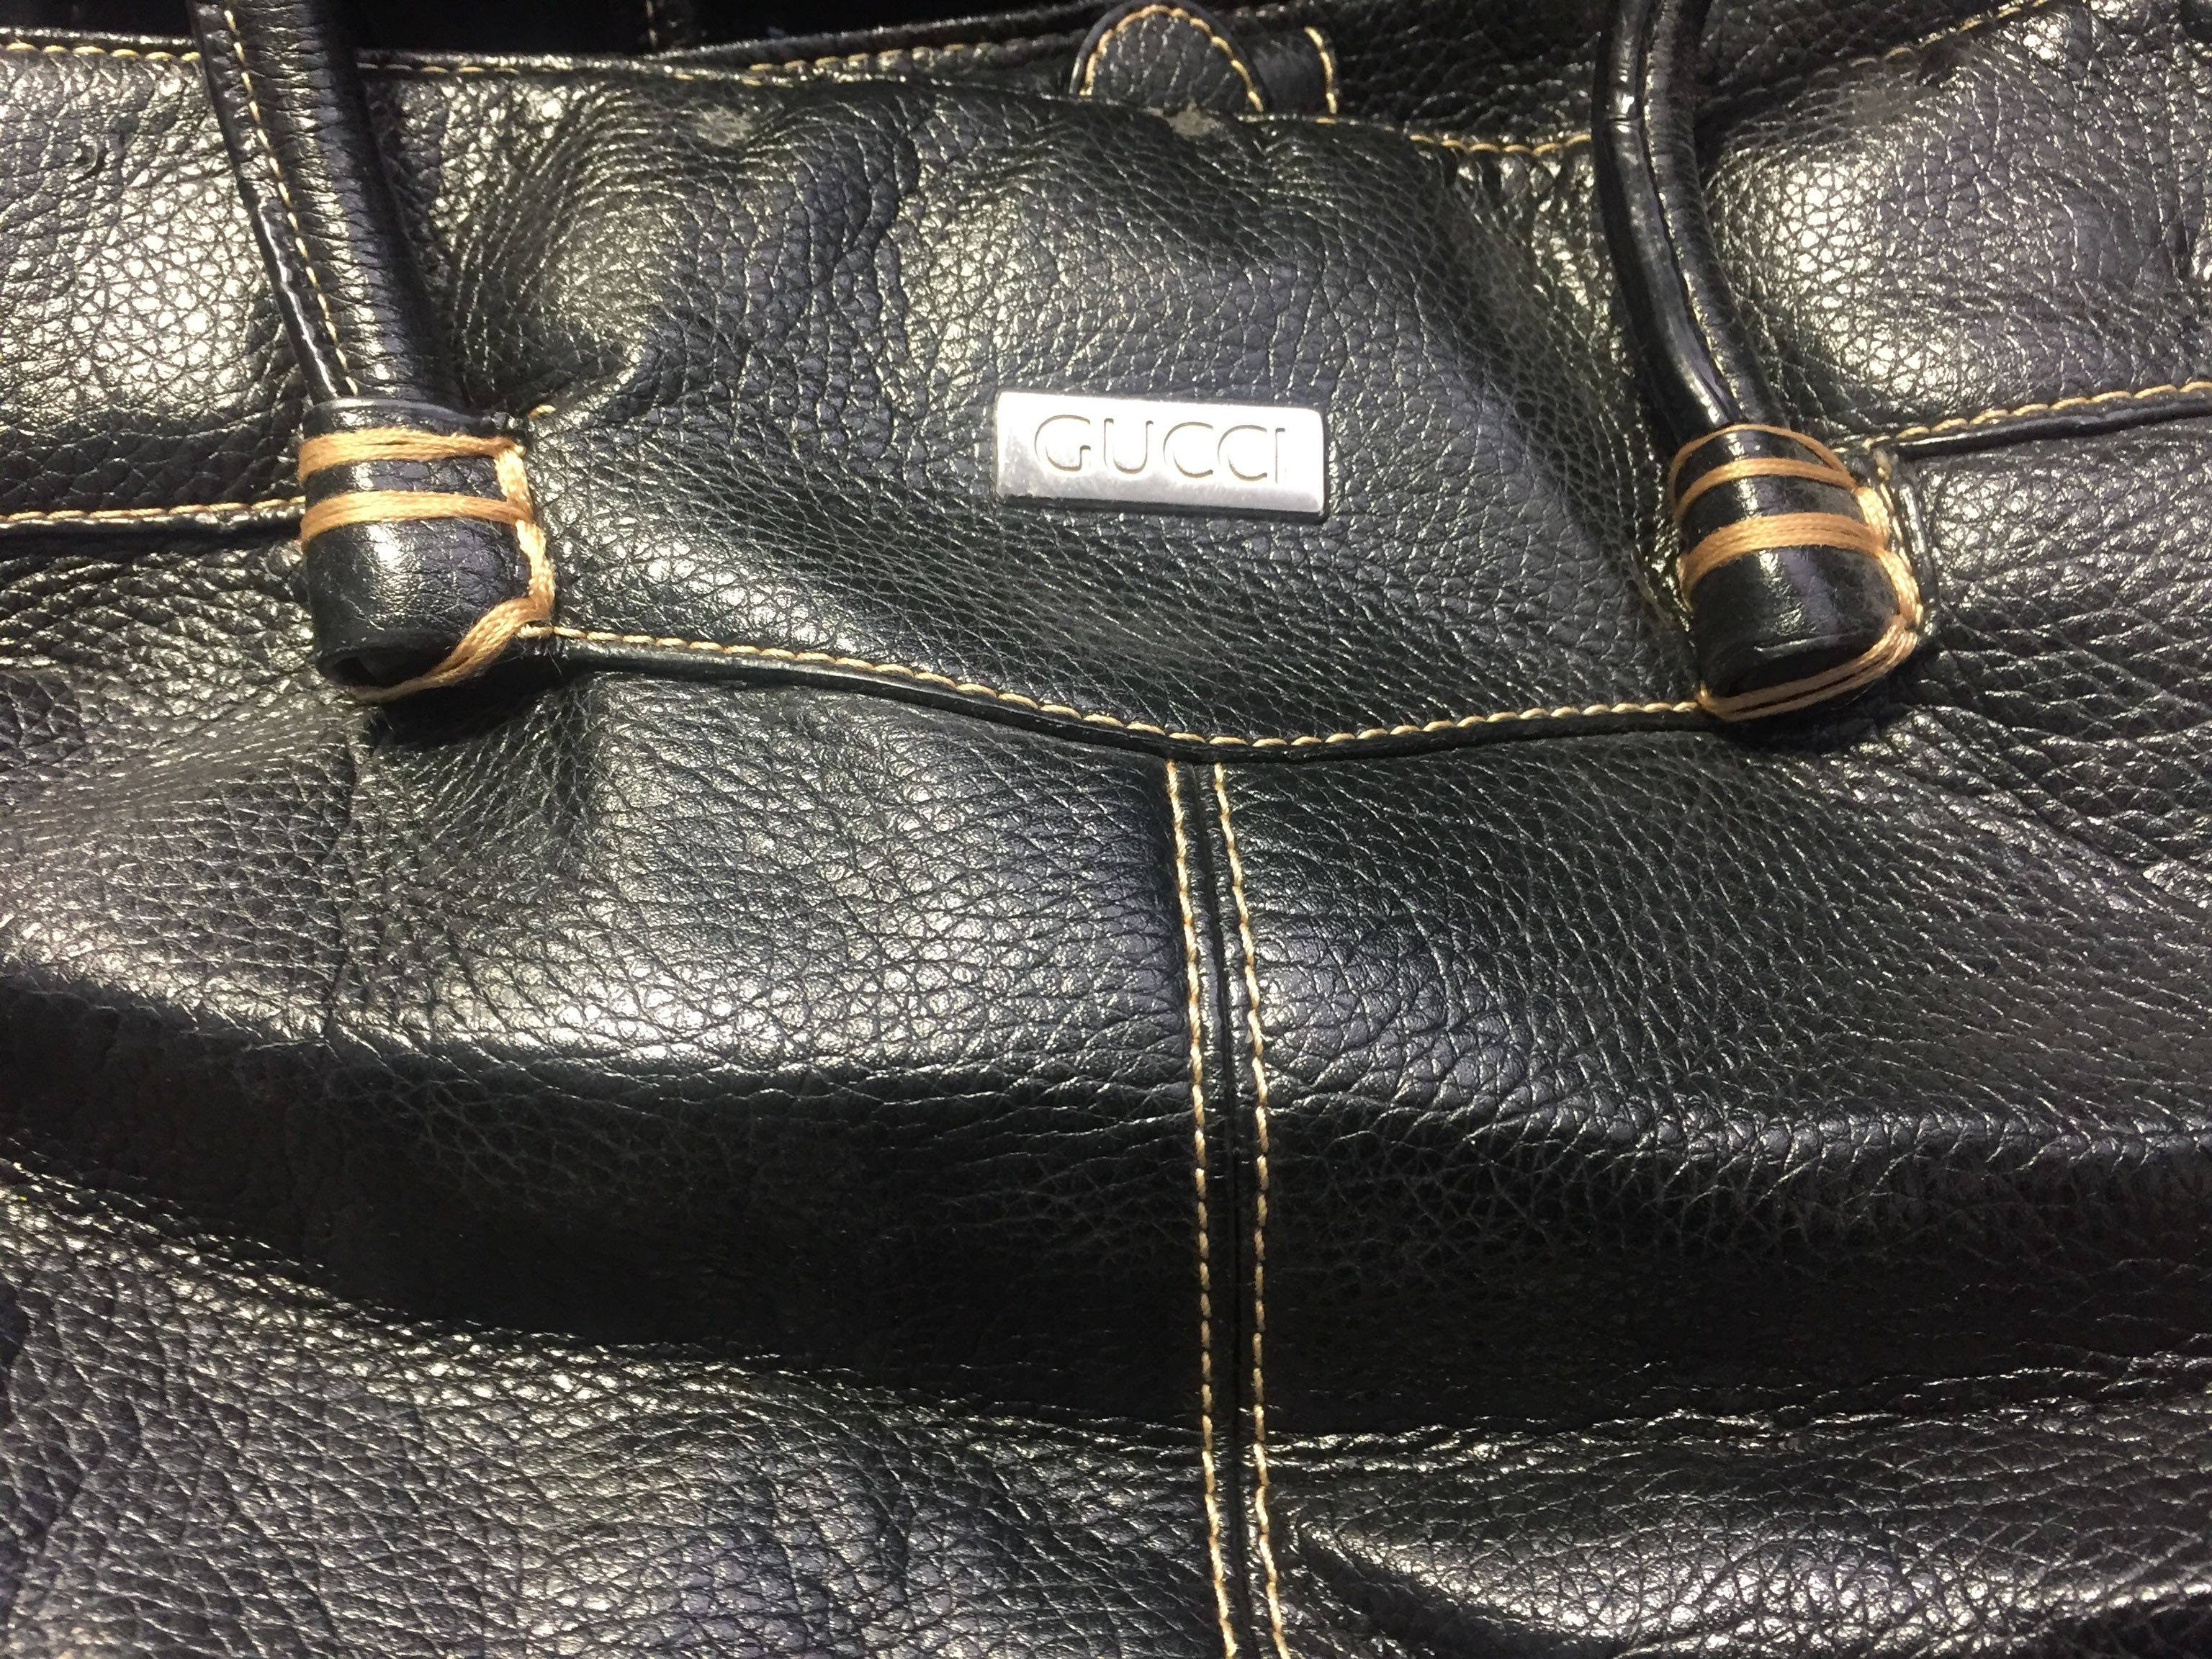 Black Gucci purse